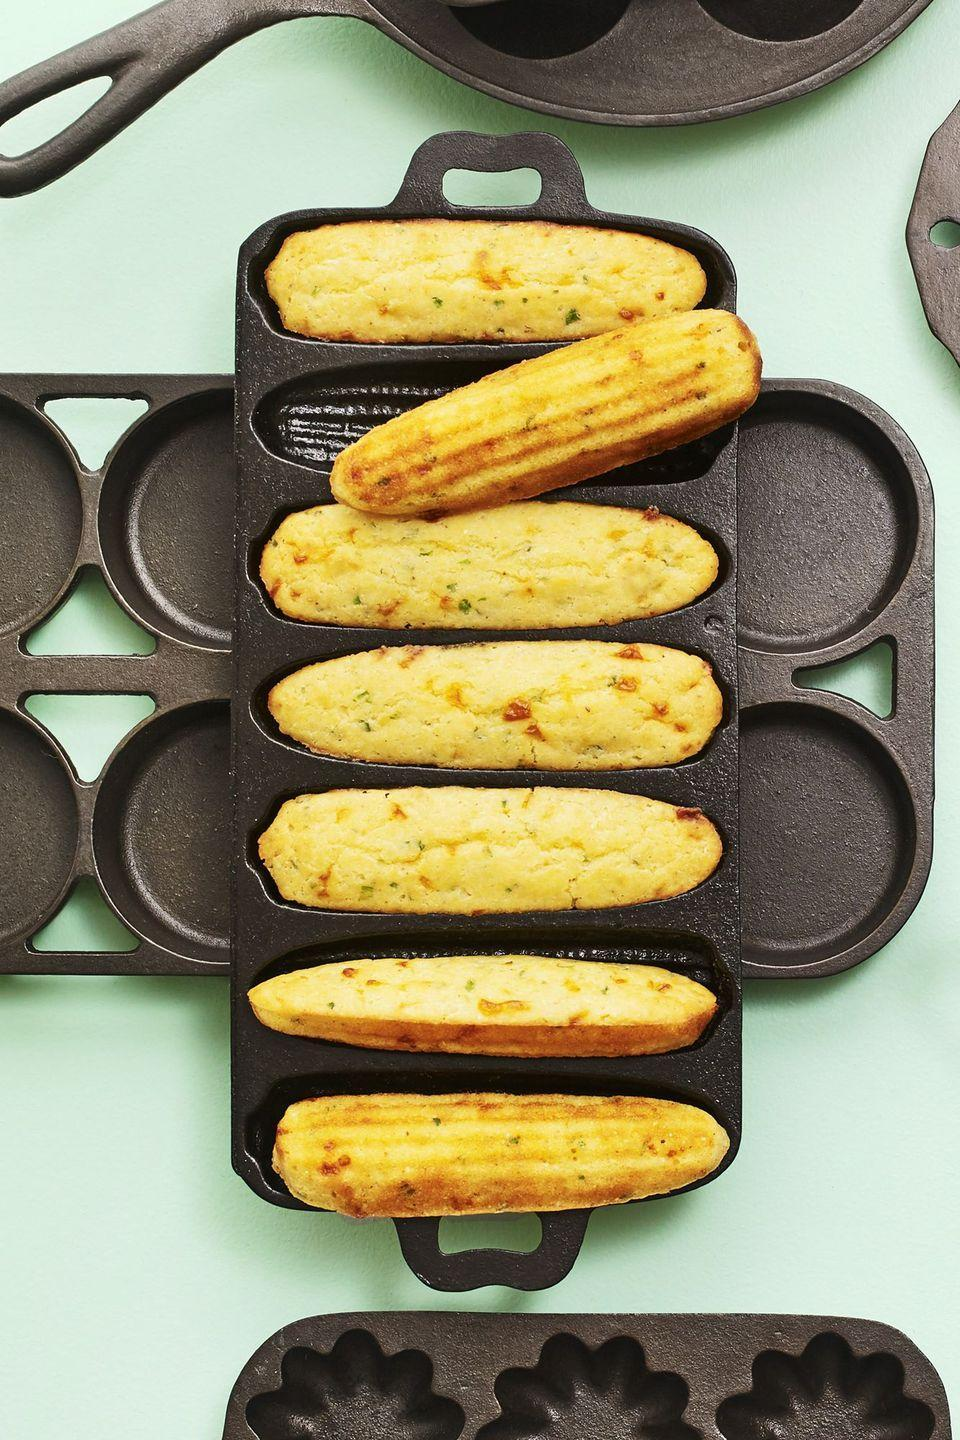 "<p>While you don't have to bake this cheesy cornbread in a cast iron pan, it's even more tasty if you do. And here's an even better idea: For a fun look, cook 'em in <a href=""https://www.amazon.com/Bayou-Classic-7490-Cast-Cornbread/dp/B000BTYL14/?tag=syn-yahoo-20&ascsubtag=%5Bartid%7C10050.g.896%5Bsrc%7Cyahoo-us"" rel=""nofollow noopener"" target=""_blank"" data-ylk=""slk:corn-shaped cast iron molds"" class=""link rapid-noclick-resp"">corn-shaped cast iron molds</a>.<br></p><p><strong><a href=""https://www.countryliving.com/food-drinks/a19705455/scallion-cornbread-recipe/"" rel=""nofollow noopener"" target=""_blank"" data-ylk=""slk:Get the recipe"" class=""link rapid-noclick-resp"">Get the recipe</a>.</strong></p><p><strong><a class=""link rapid-noclick-resp"" href=""https://www.lodgecastiron.com/product/seasoned-cast-iron-cornstick-pan"" rel=""nofollow noopener"" target=""_blank"" data-ylk=""slk:SHOP CORN STICK PANS"">SHOP CORN STICK PANS</a><br></strong></p>"